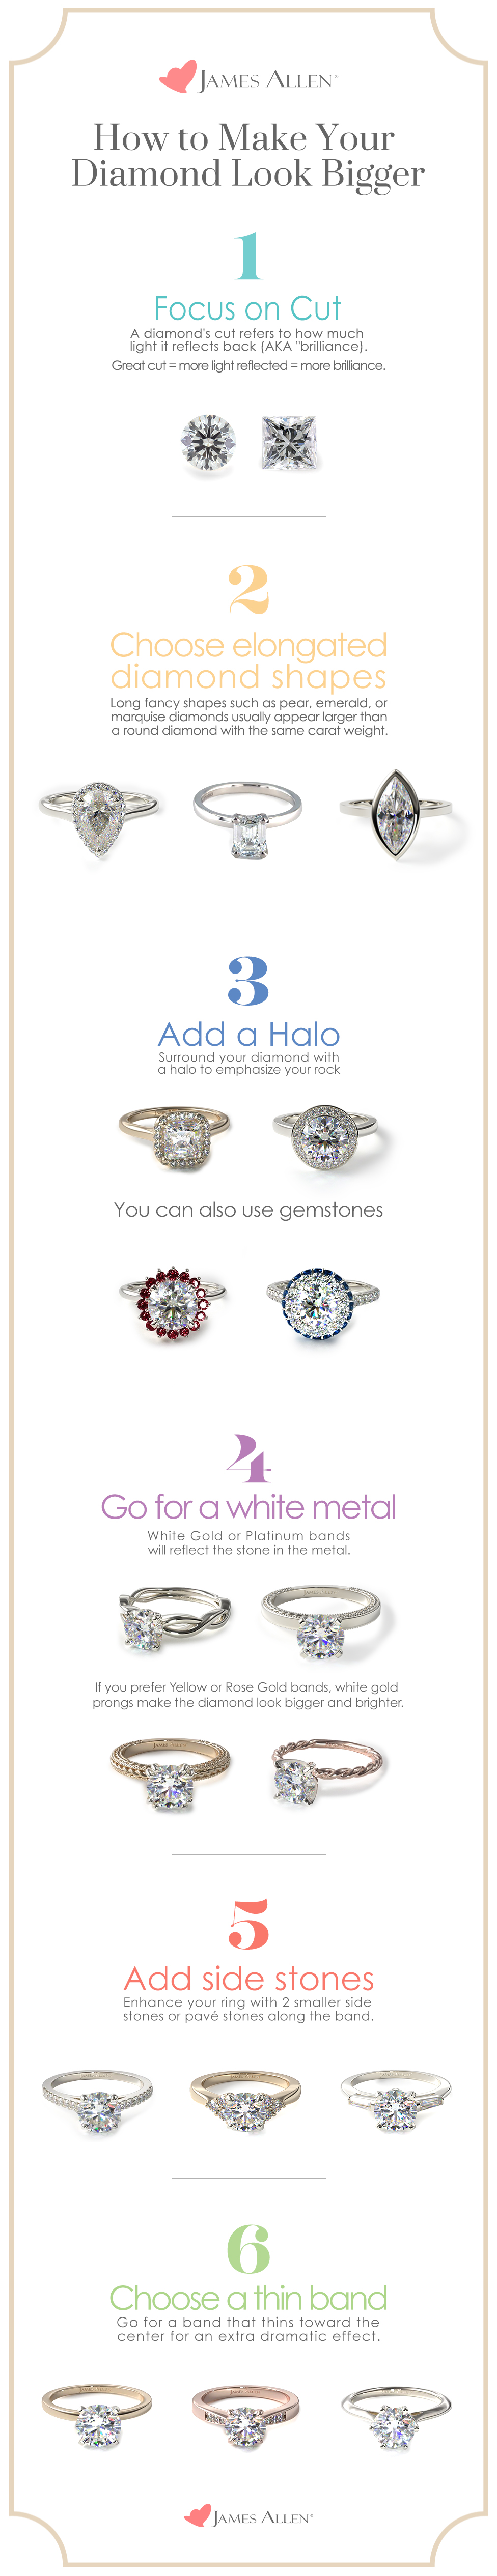 Pinterest pin on how to make engagement rings bigger